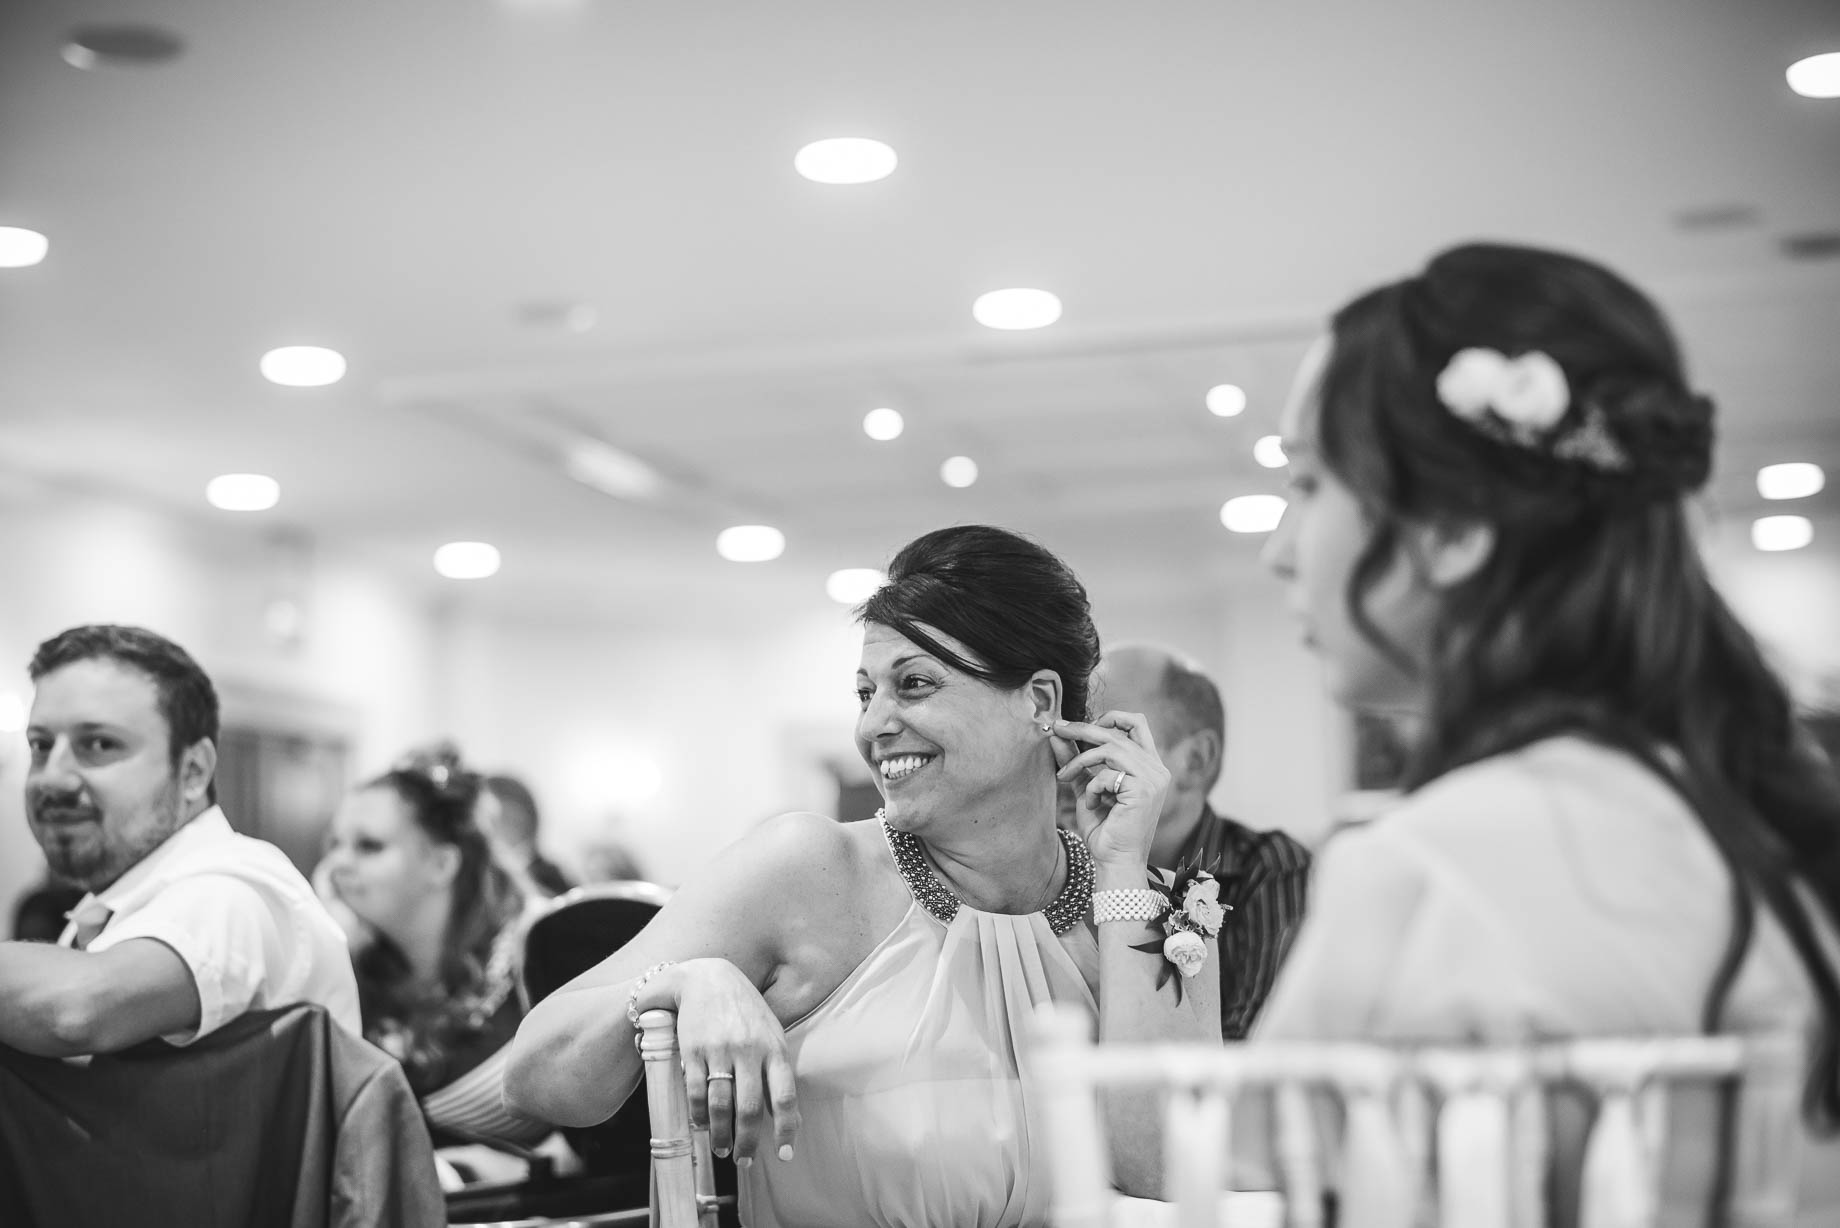 Luton Hoo wedding photography by Guy Collier Photography - Lauren and Gem (136 of 178)